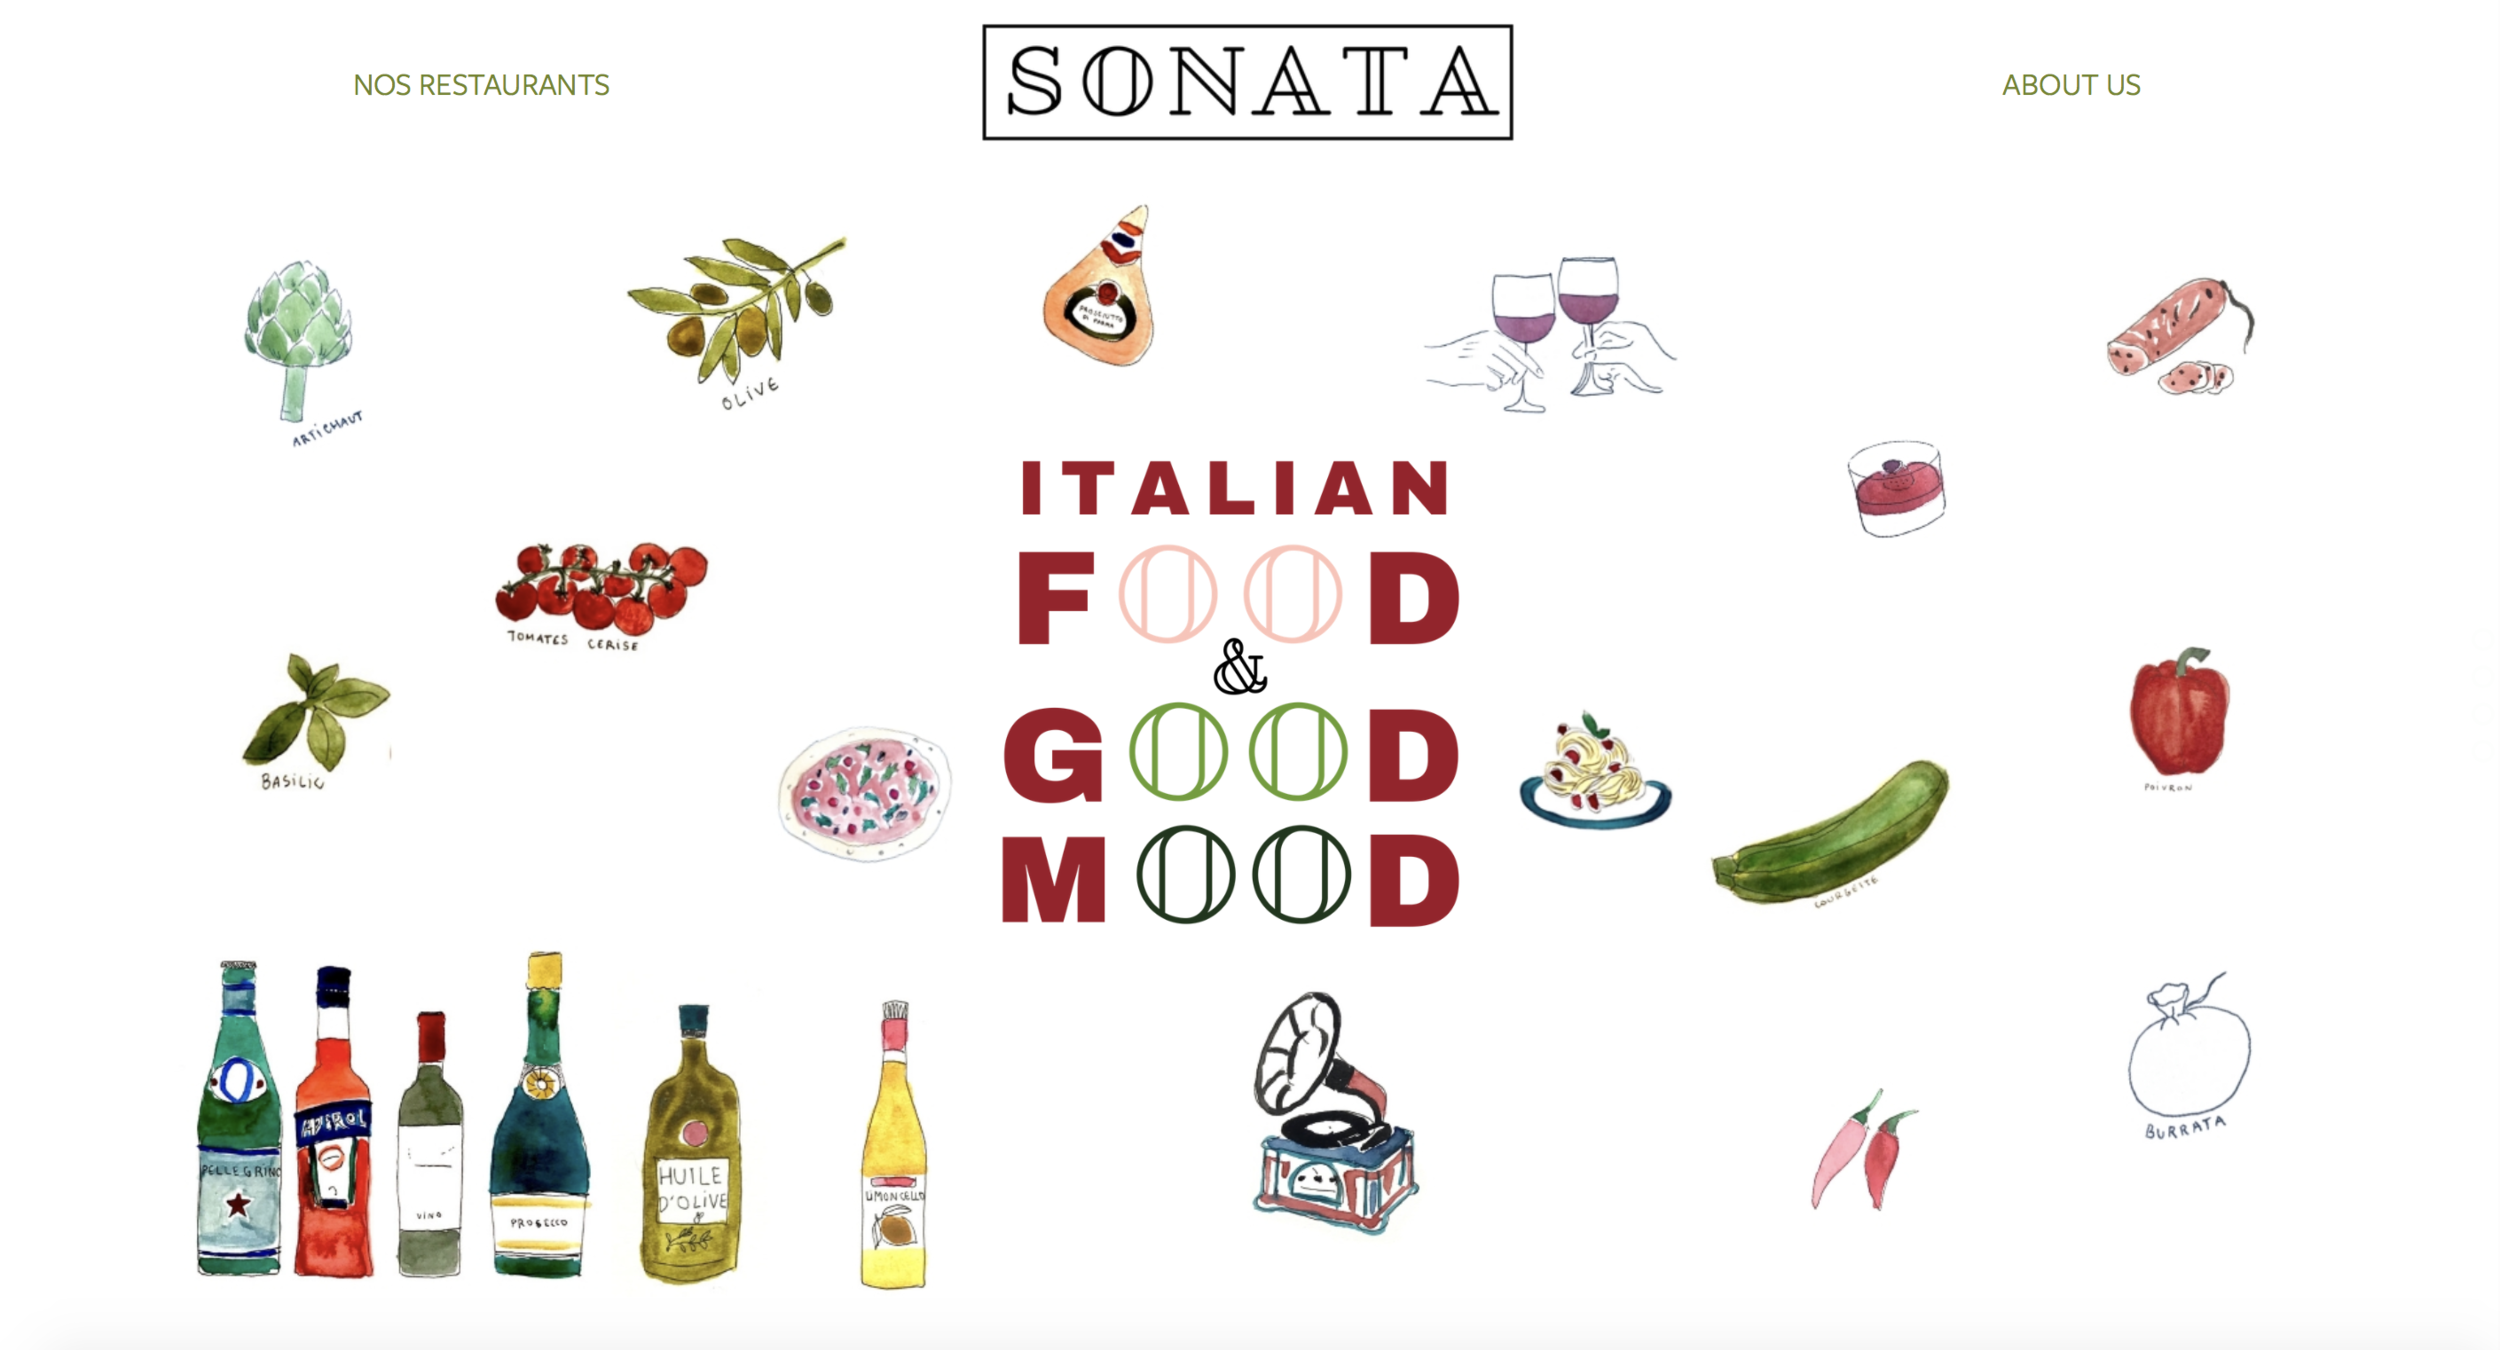 SONATA - communication visuelle pour le restaurant